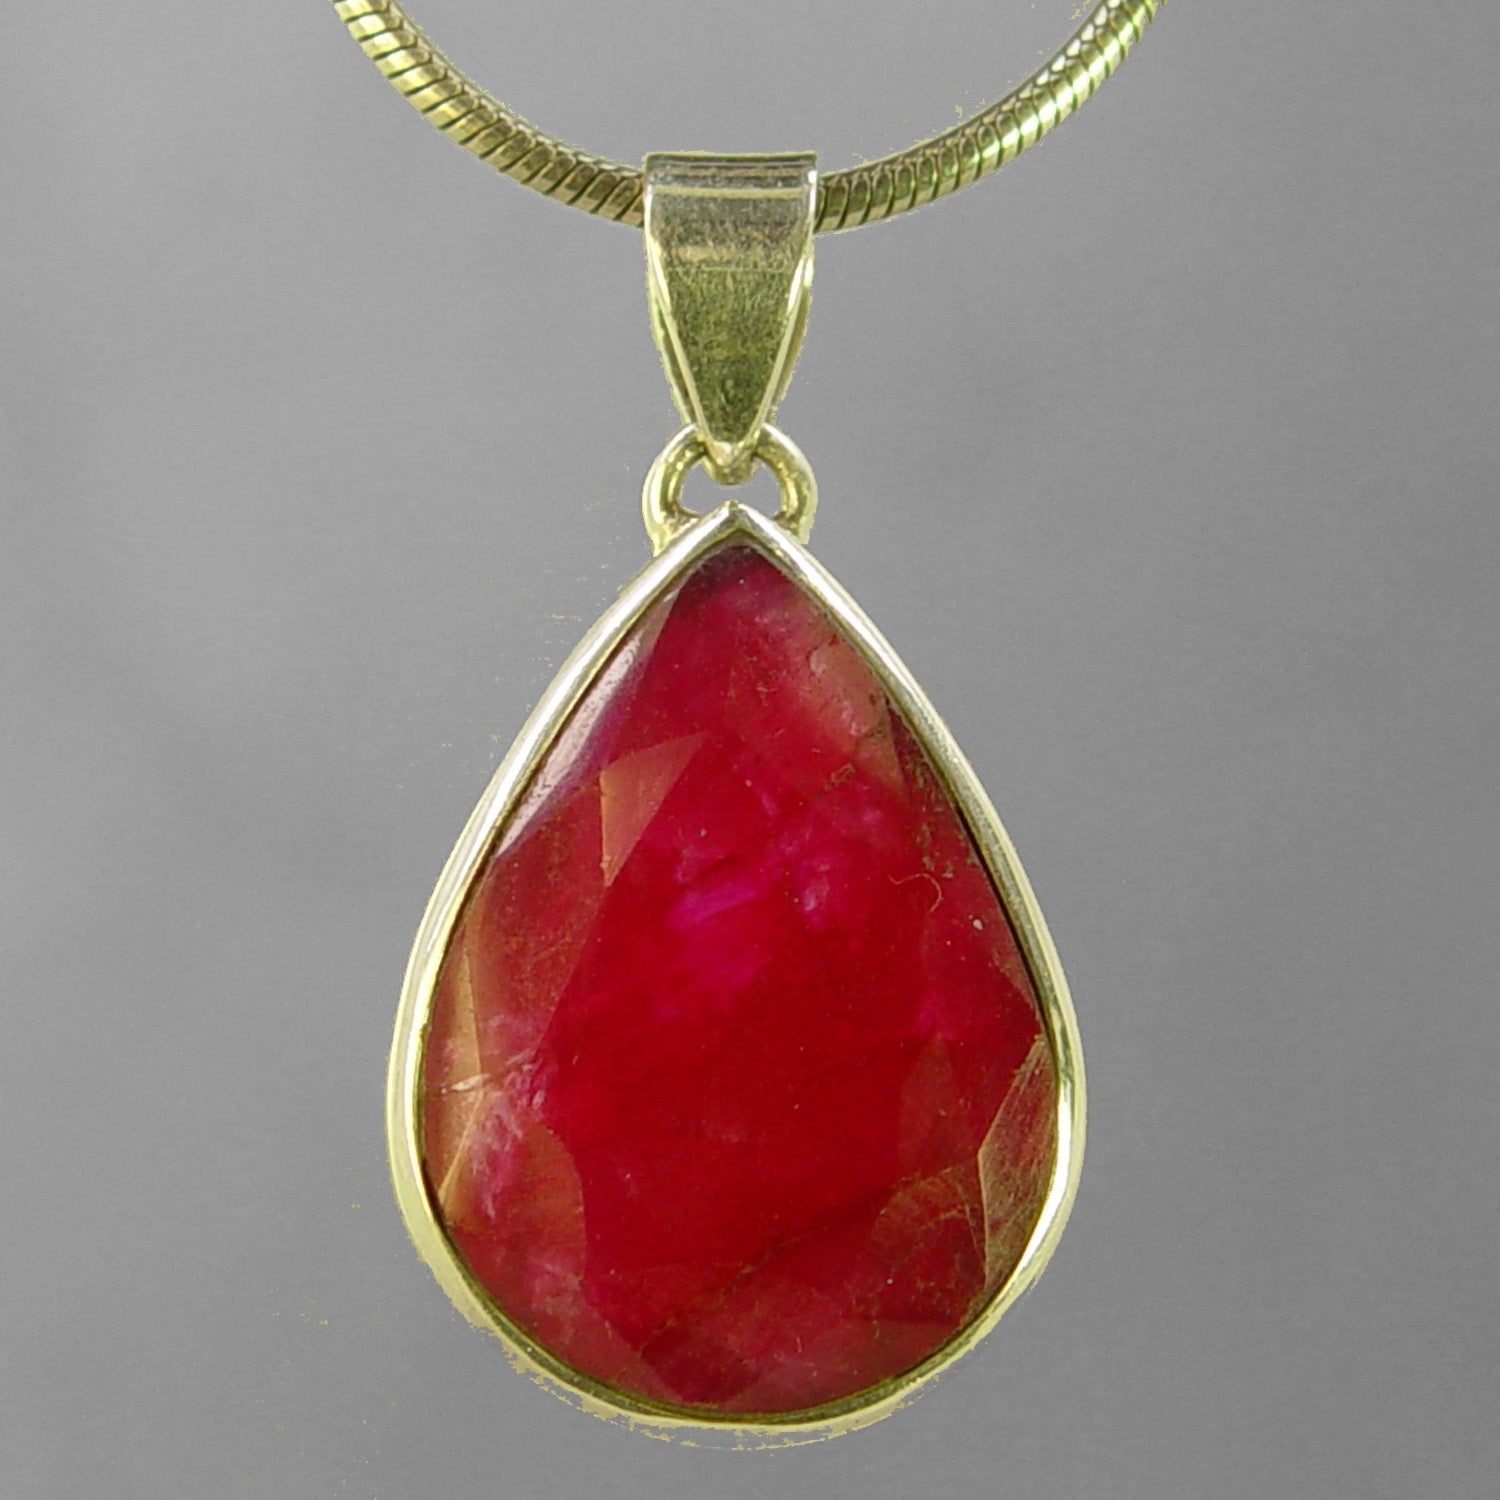 Ruby 19 ct Pear Sterling Silver Bezel Pendant